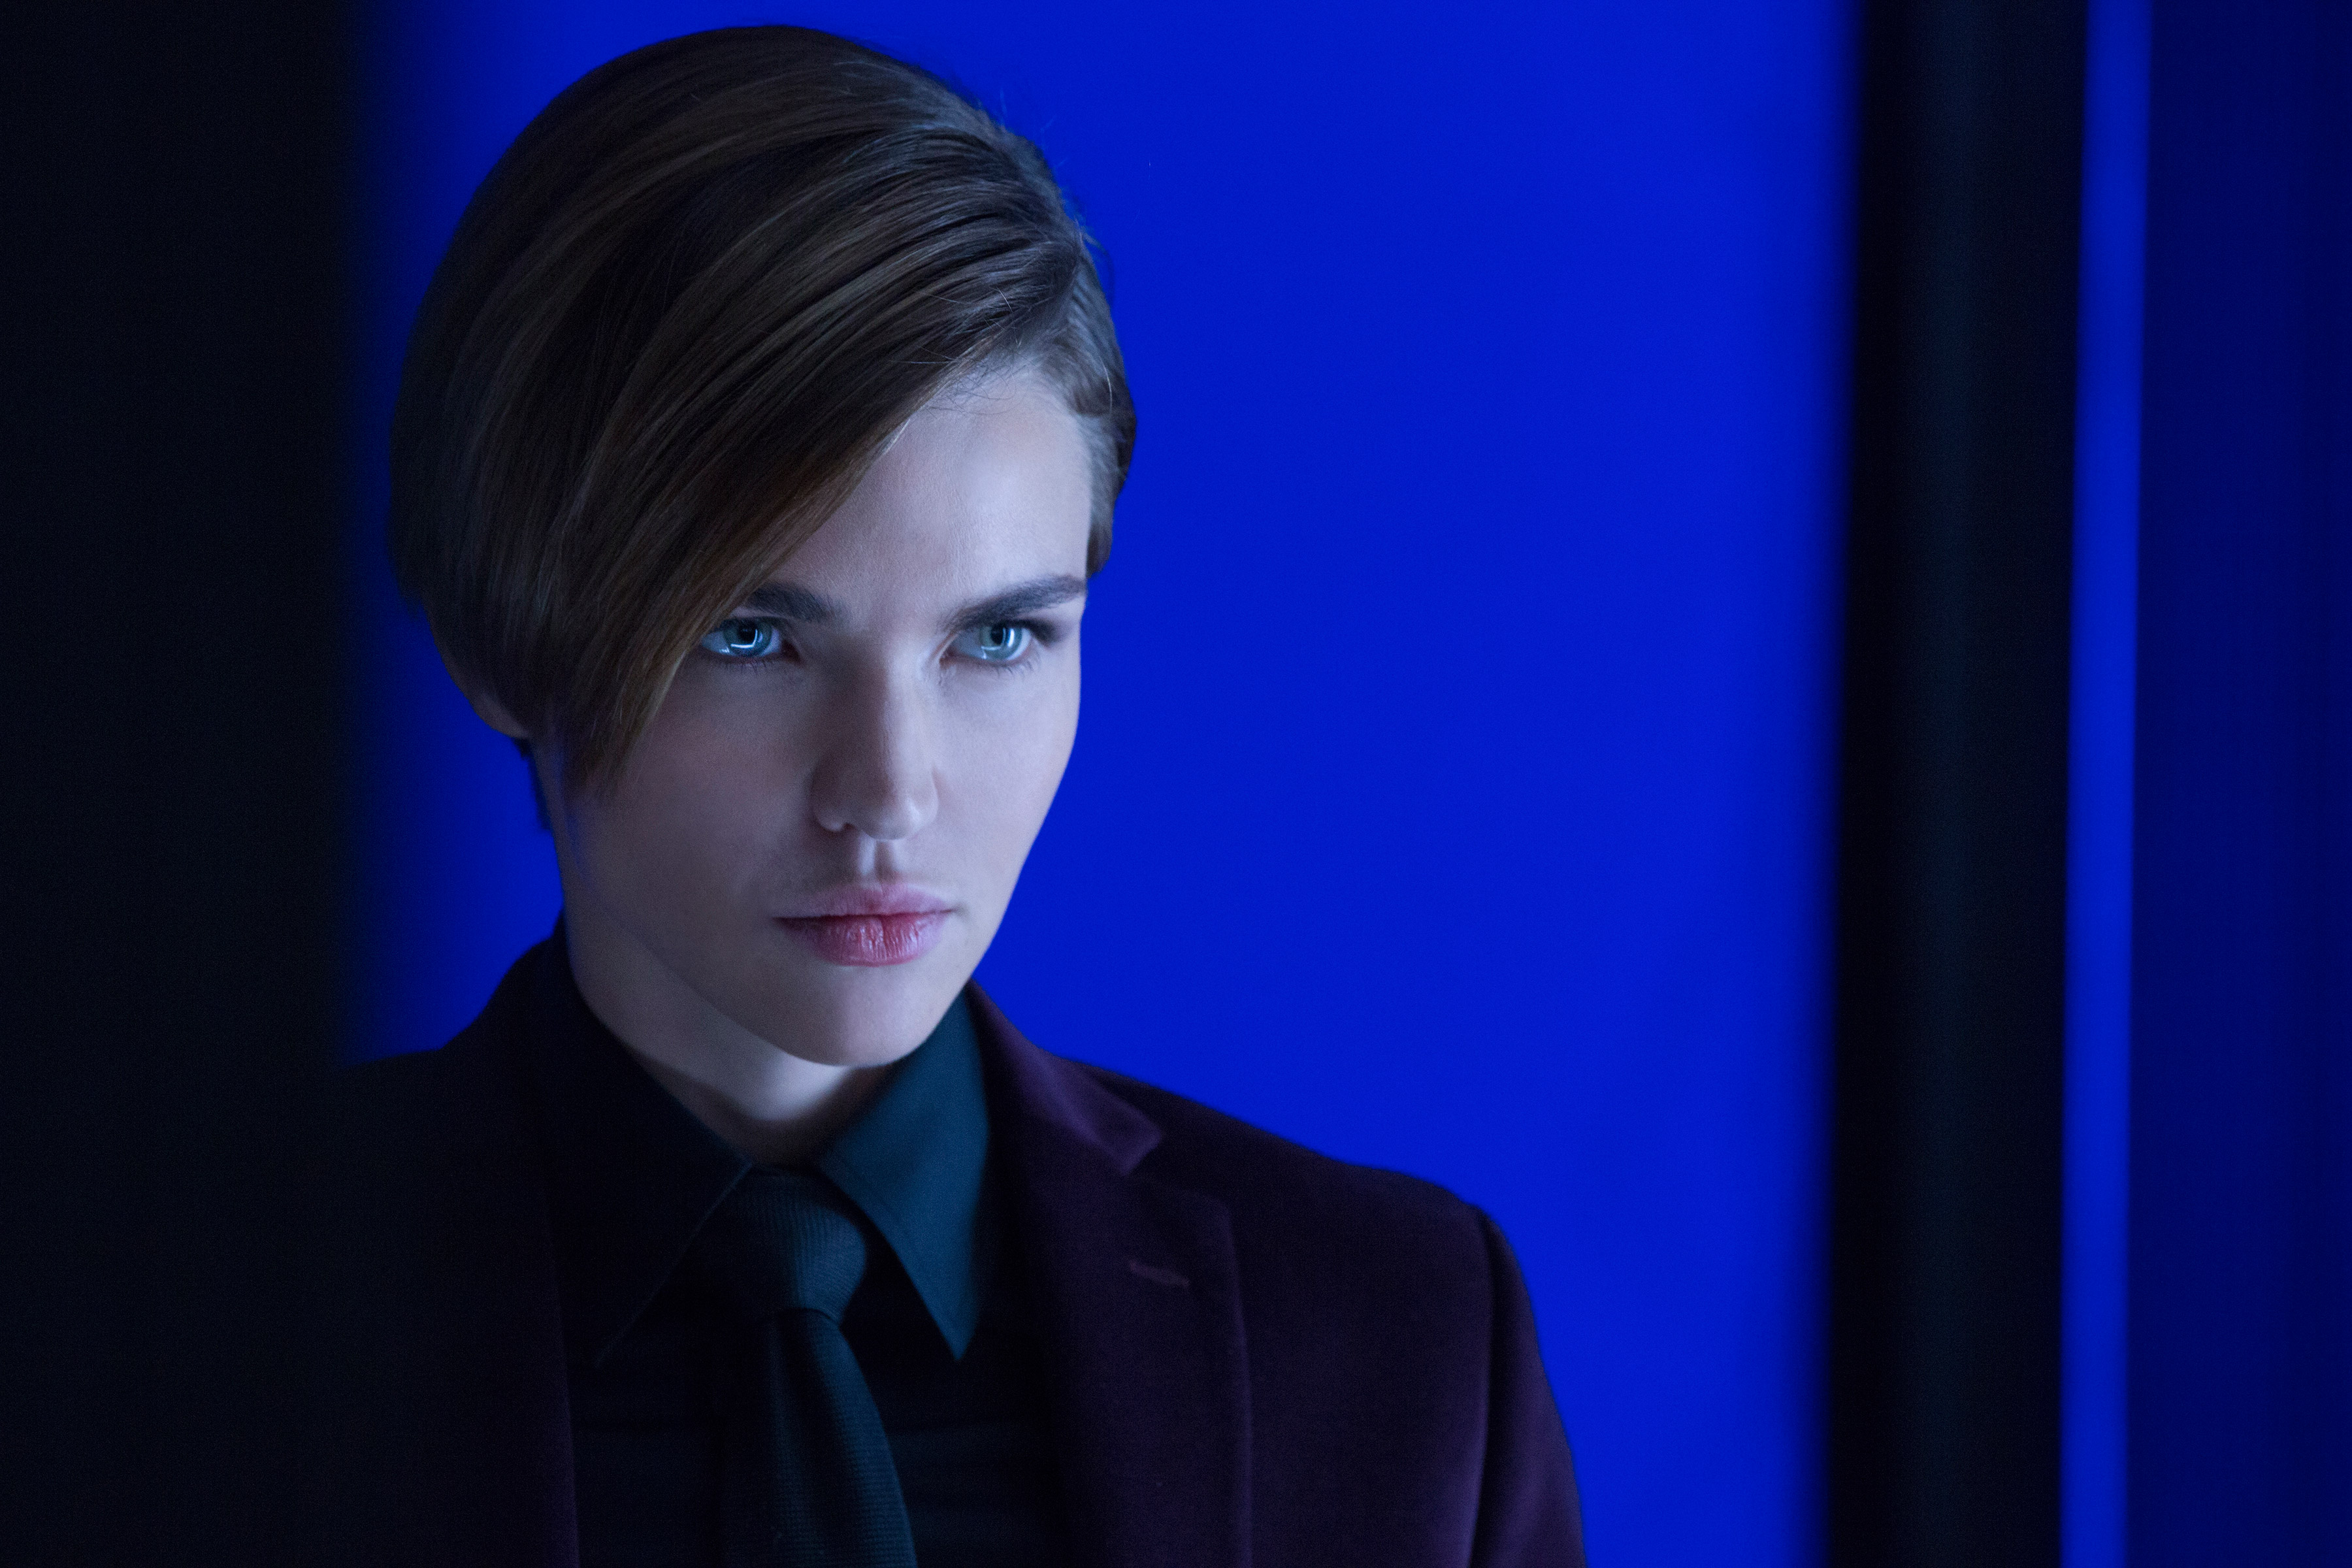 Ruby Rose John Wick Chapter 2 Hd Movies 4k Wallpapers